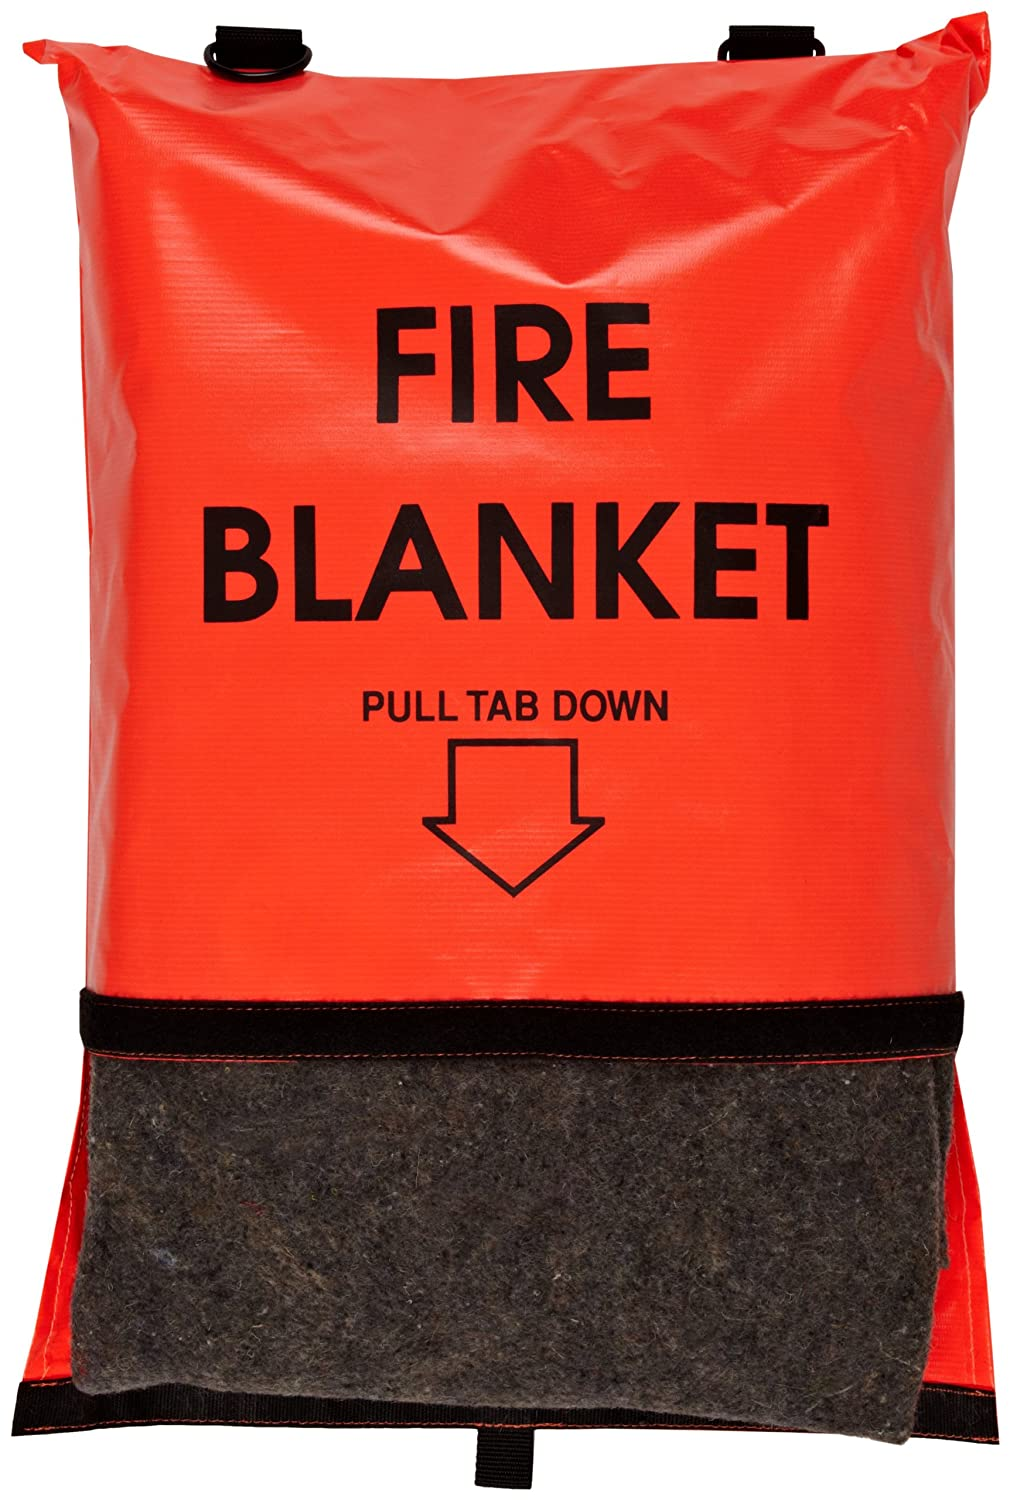 Think Safe 911-83700 Bright Orange Fire Blanket and Bag with Velcro Closure, 84' L X 62' W